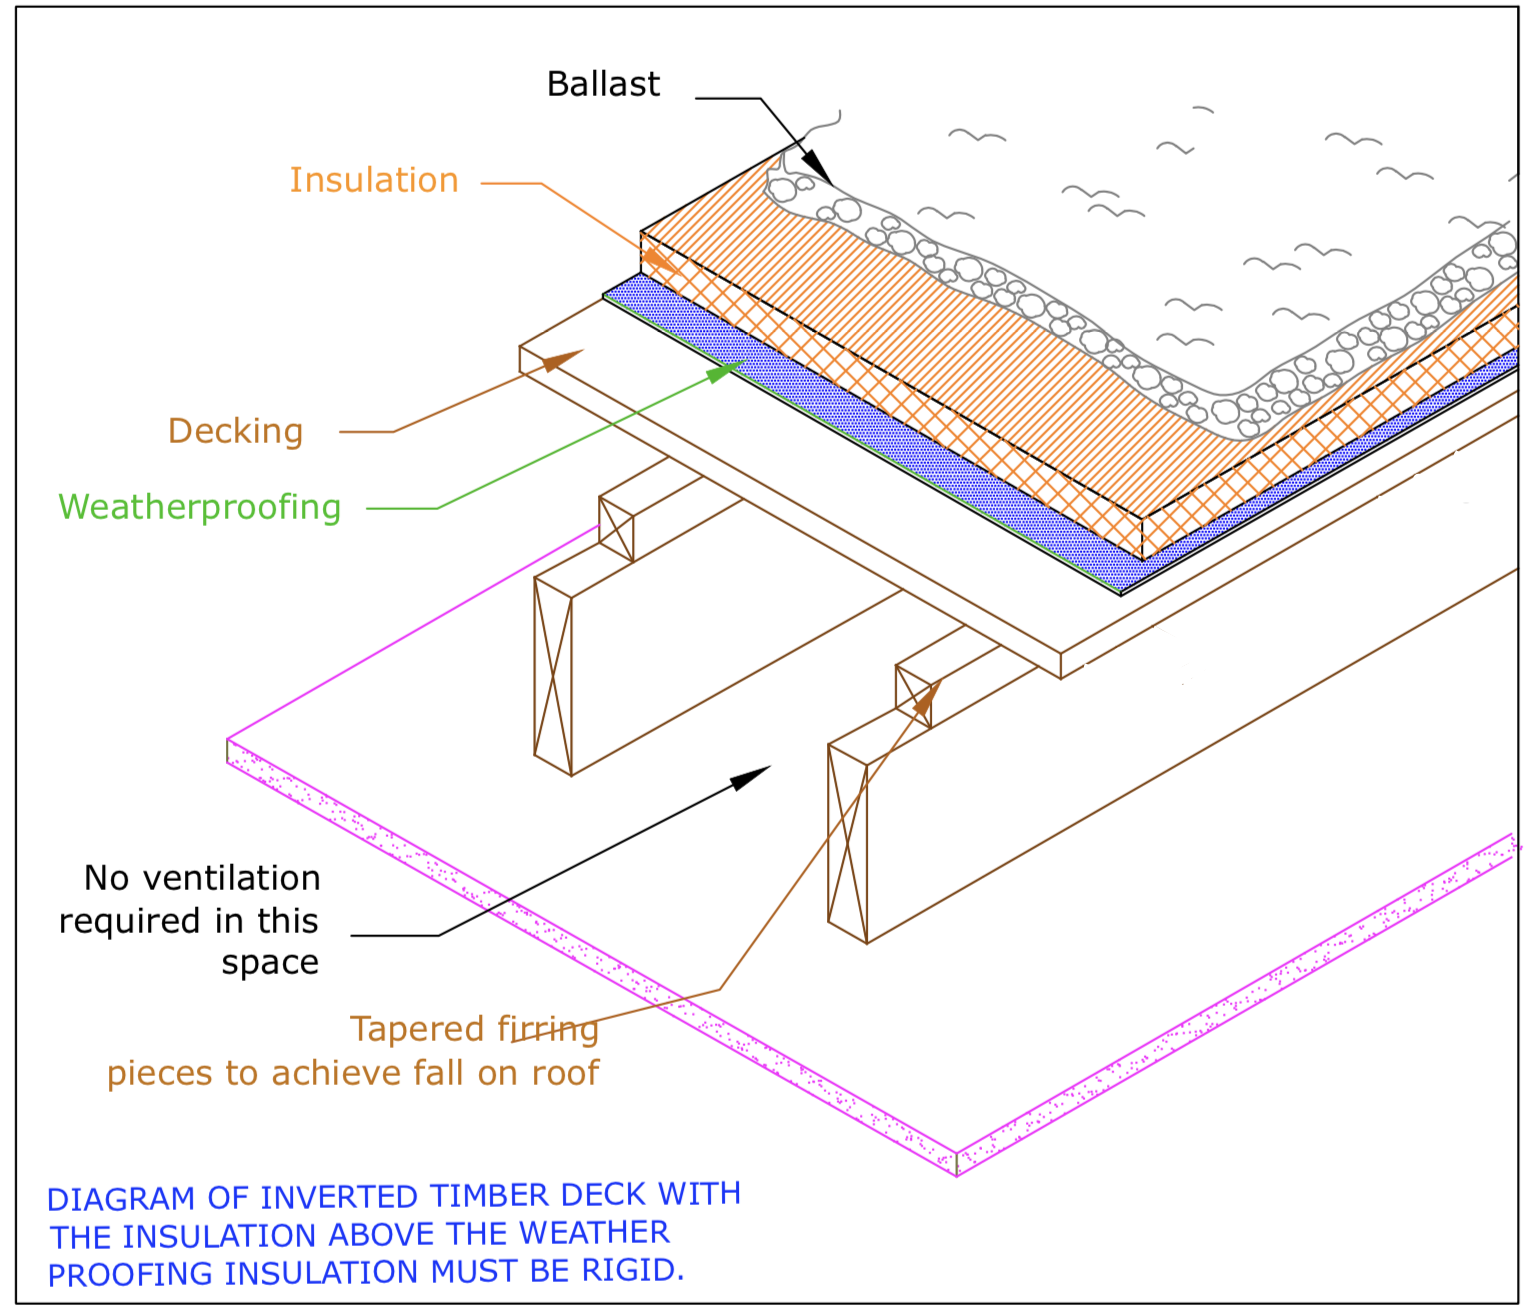 Diagram D74 - Typical inverted timber deck roof detail